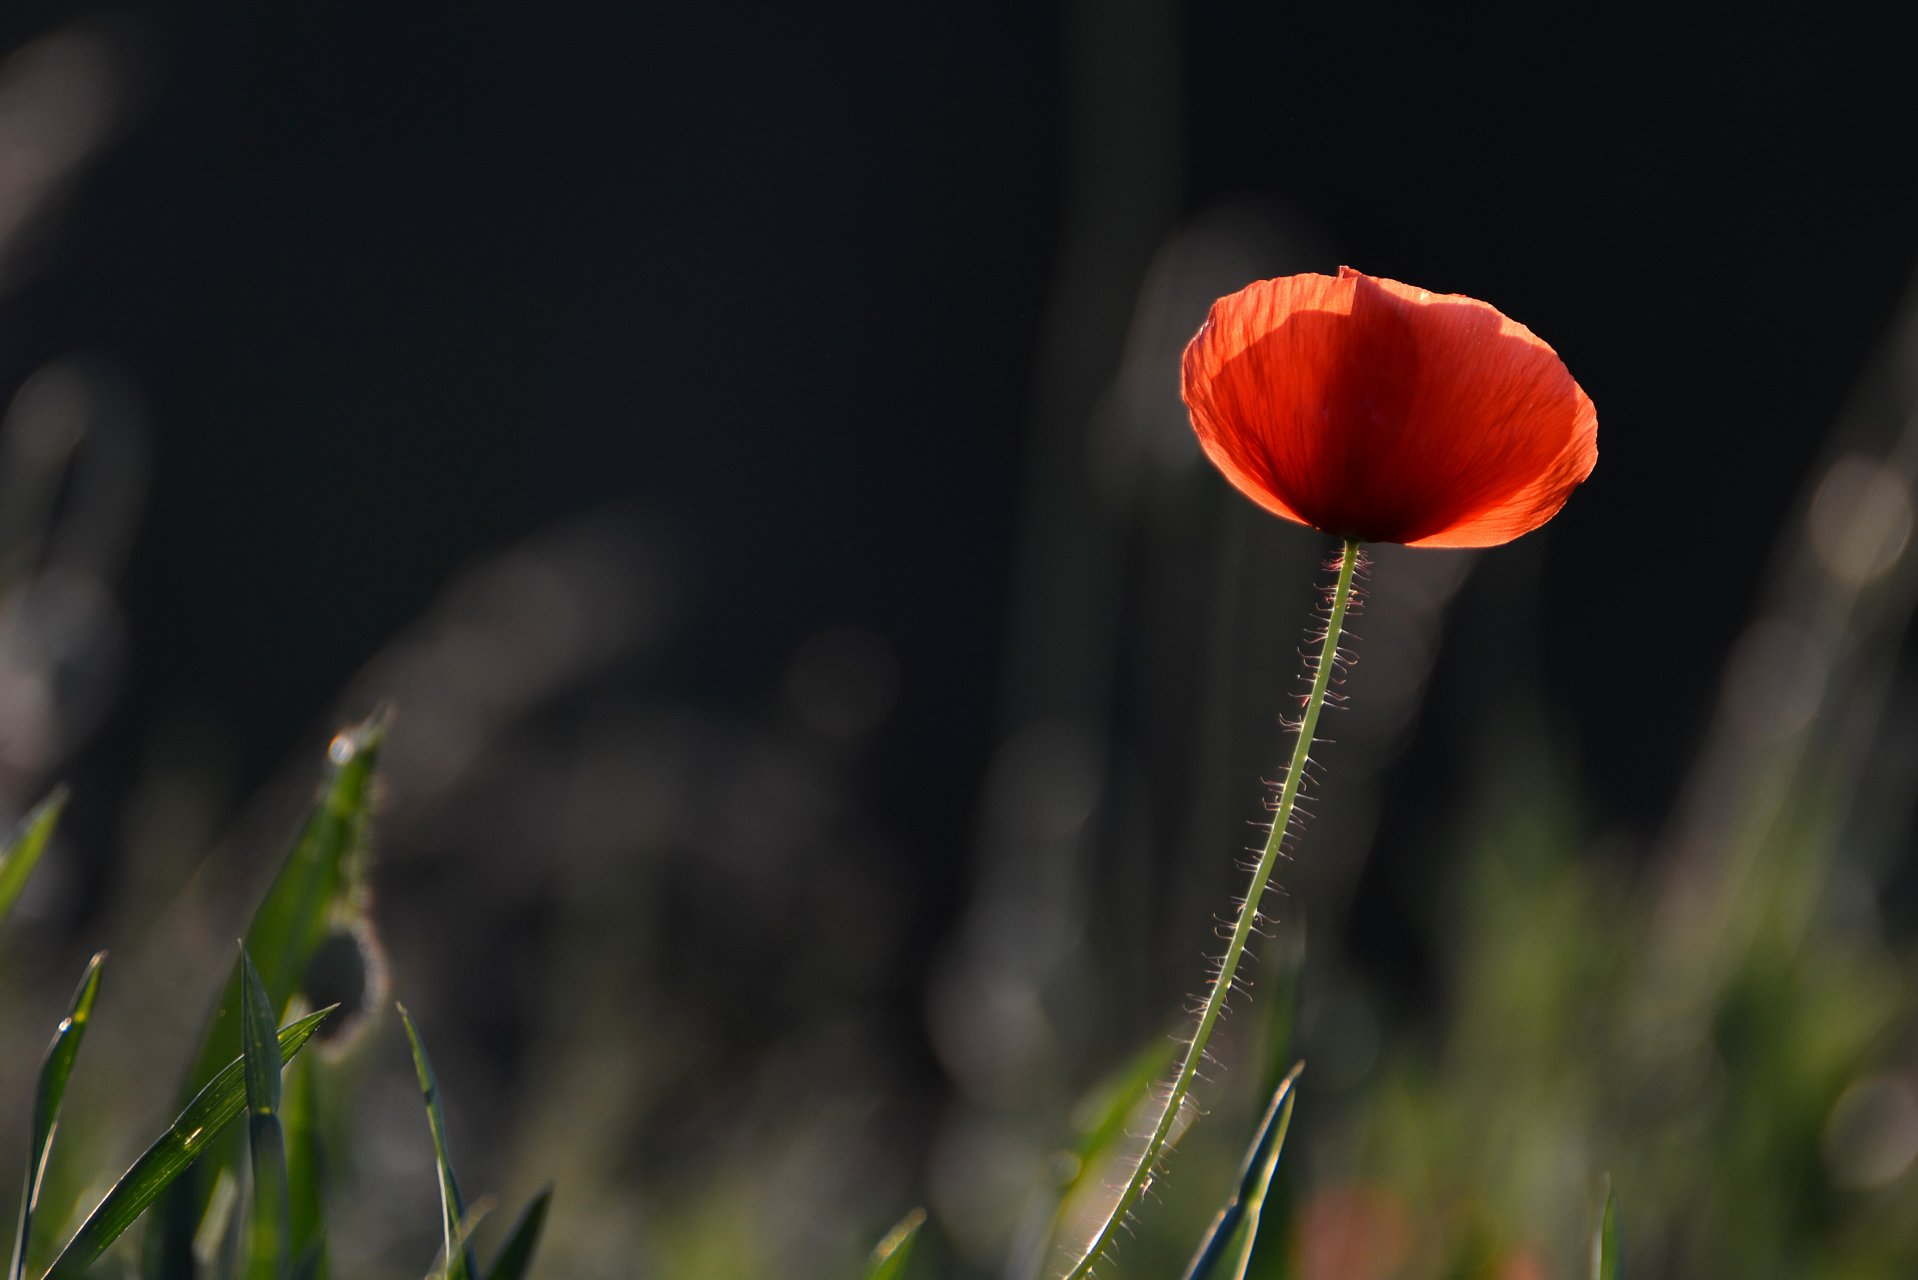 a shining red poppy flower on the black background